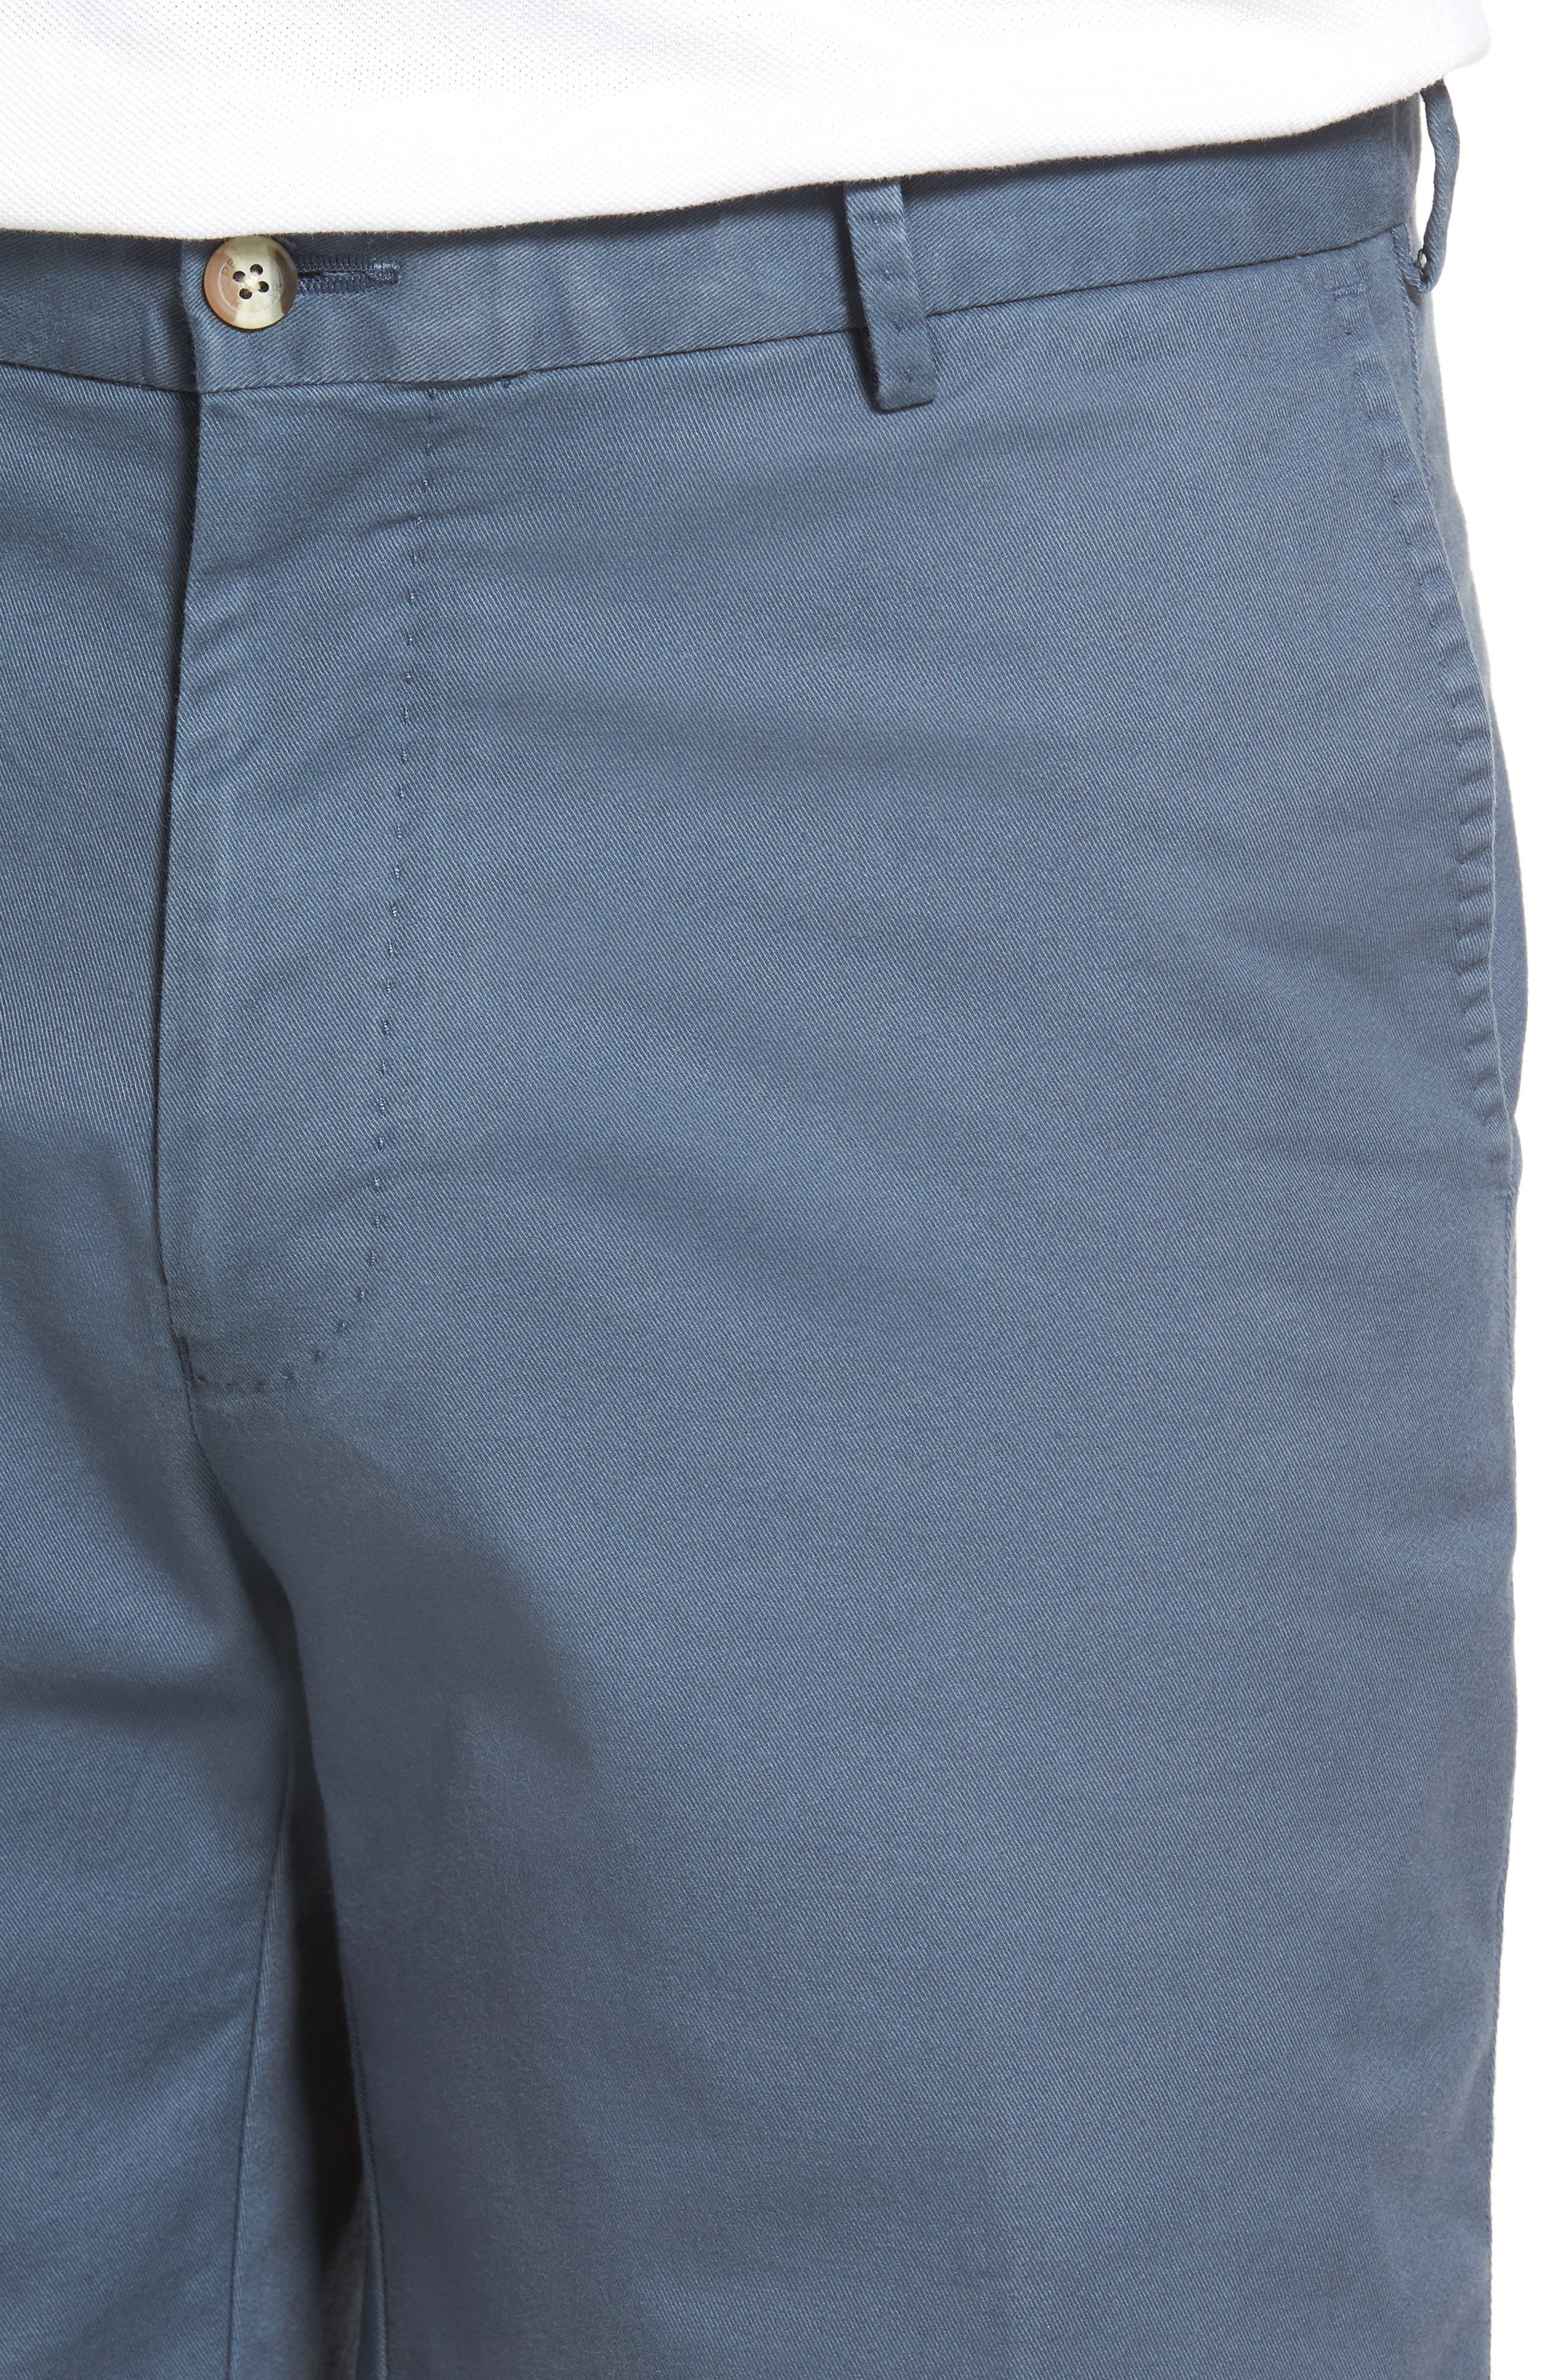 PETER MILLAR,                             Soft Touch Stretch Twill Shorts,                             Alternate thumbnail 4, color,                             NAVY